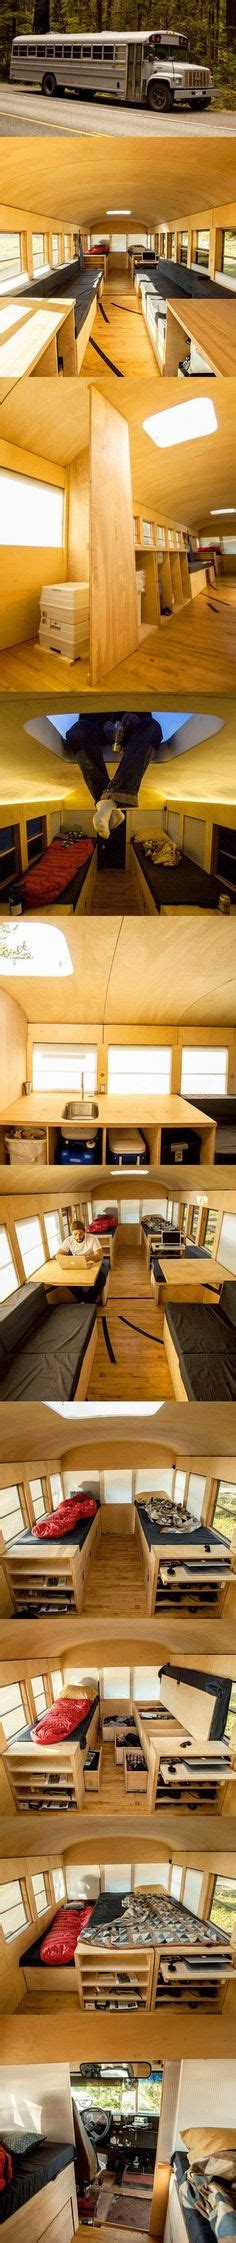 School Converted Into Small Home By Architecture Student by That S A Wrap From School To Cabin On Wheels